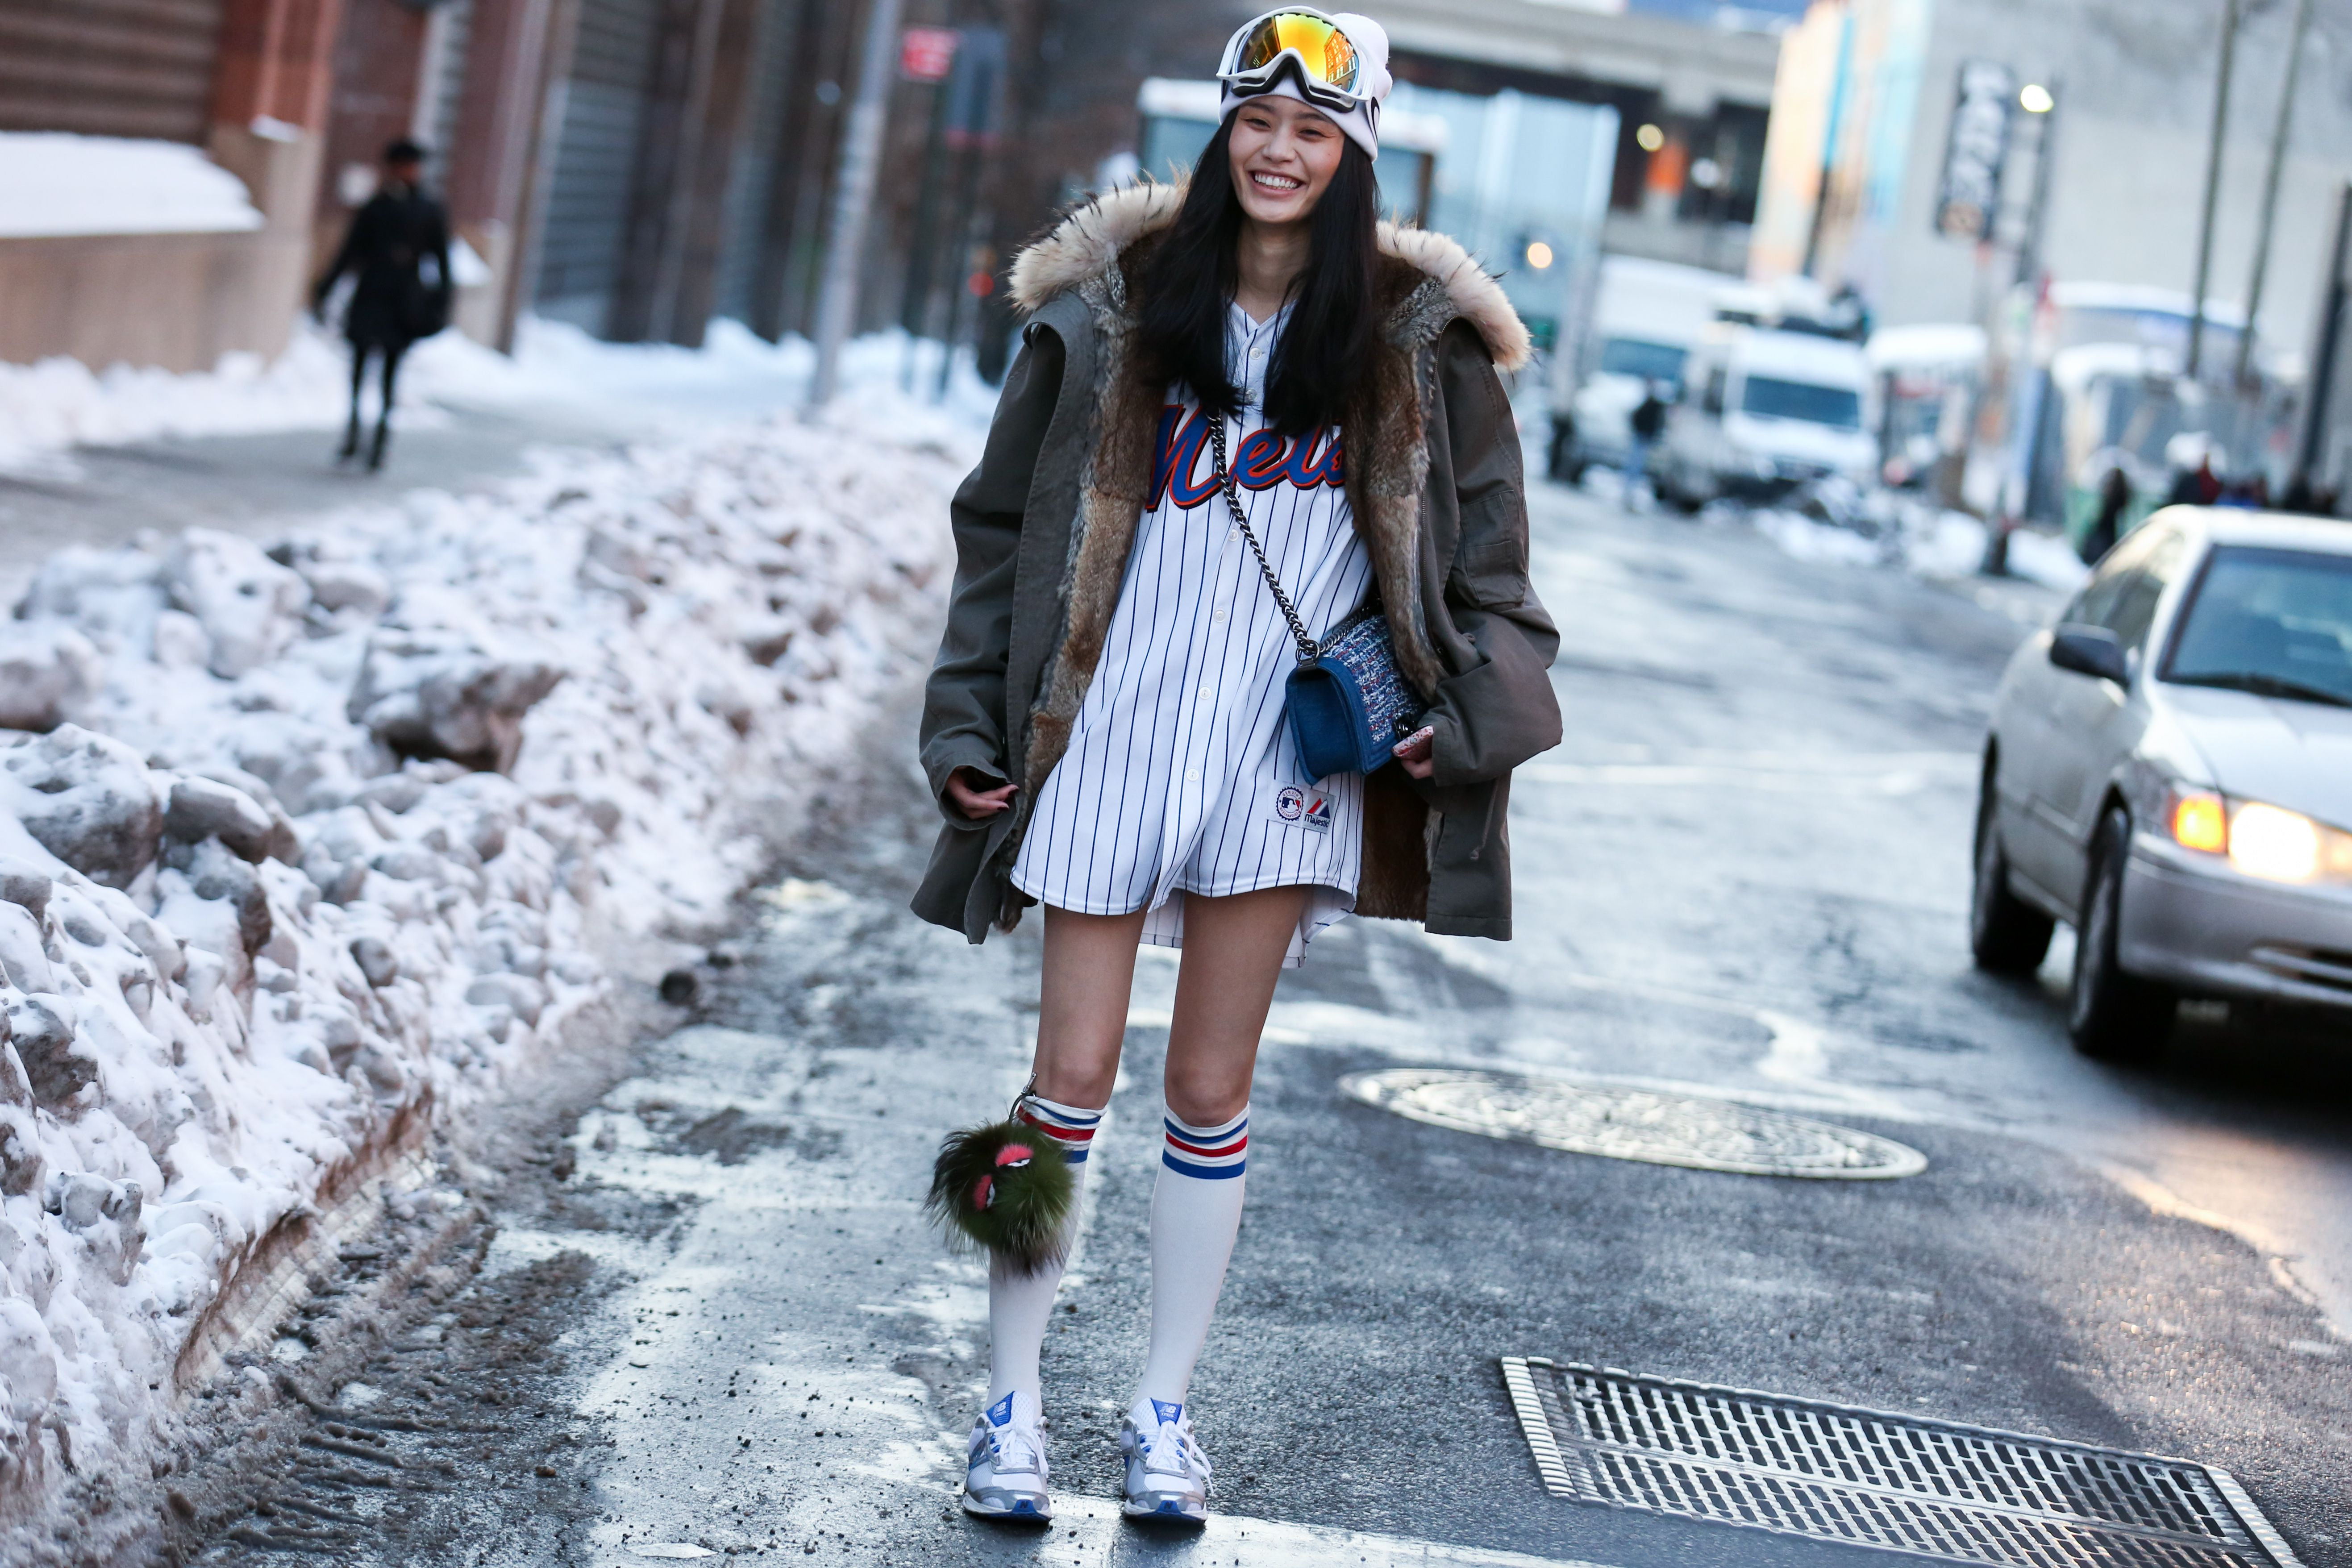 19 Stylish Ways To Wear A Sports Jersey Jersey Fashion Chic Winter Style How To Wear